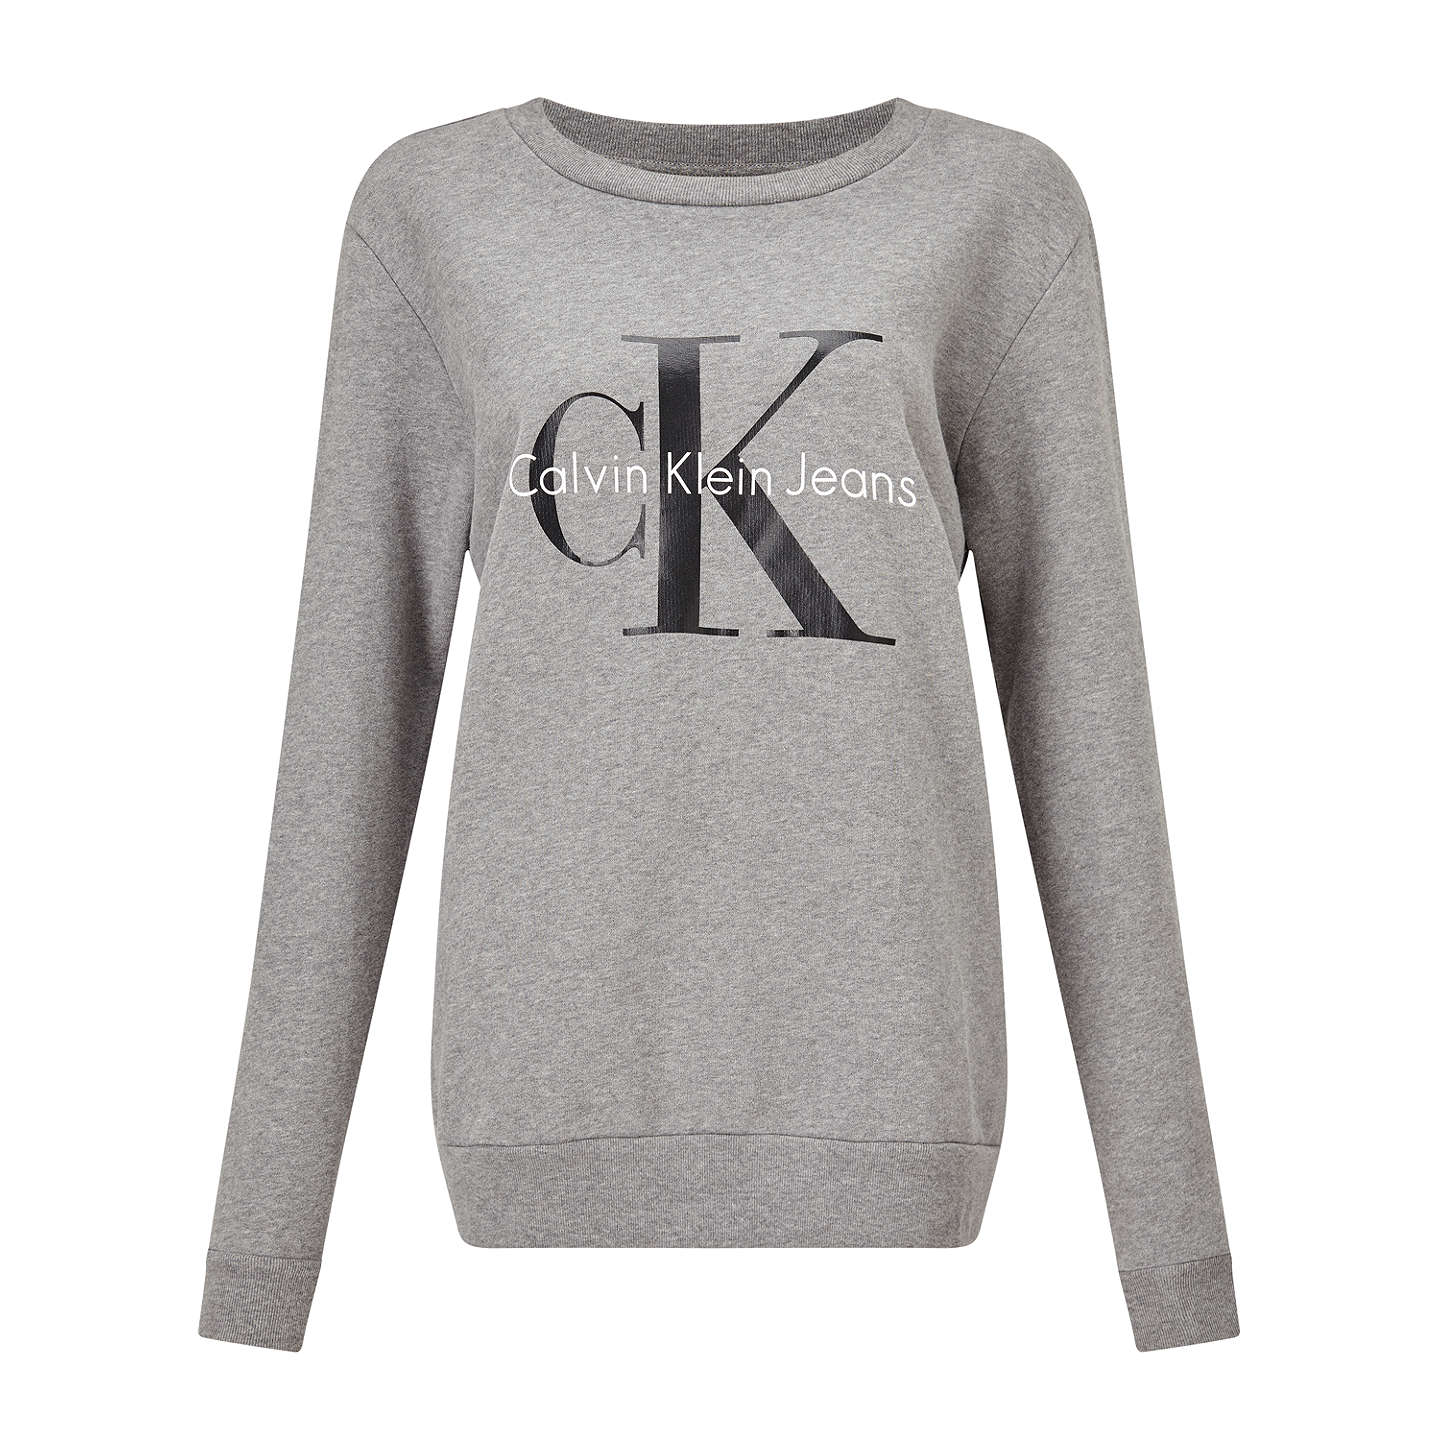 Calvin Klein Printed Logo Sweatshirt, Light Grey Heather by Calvin Klein